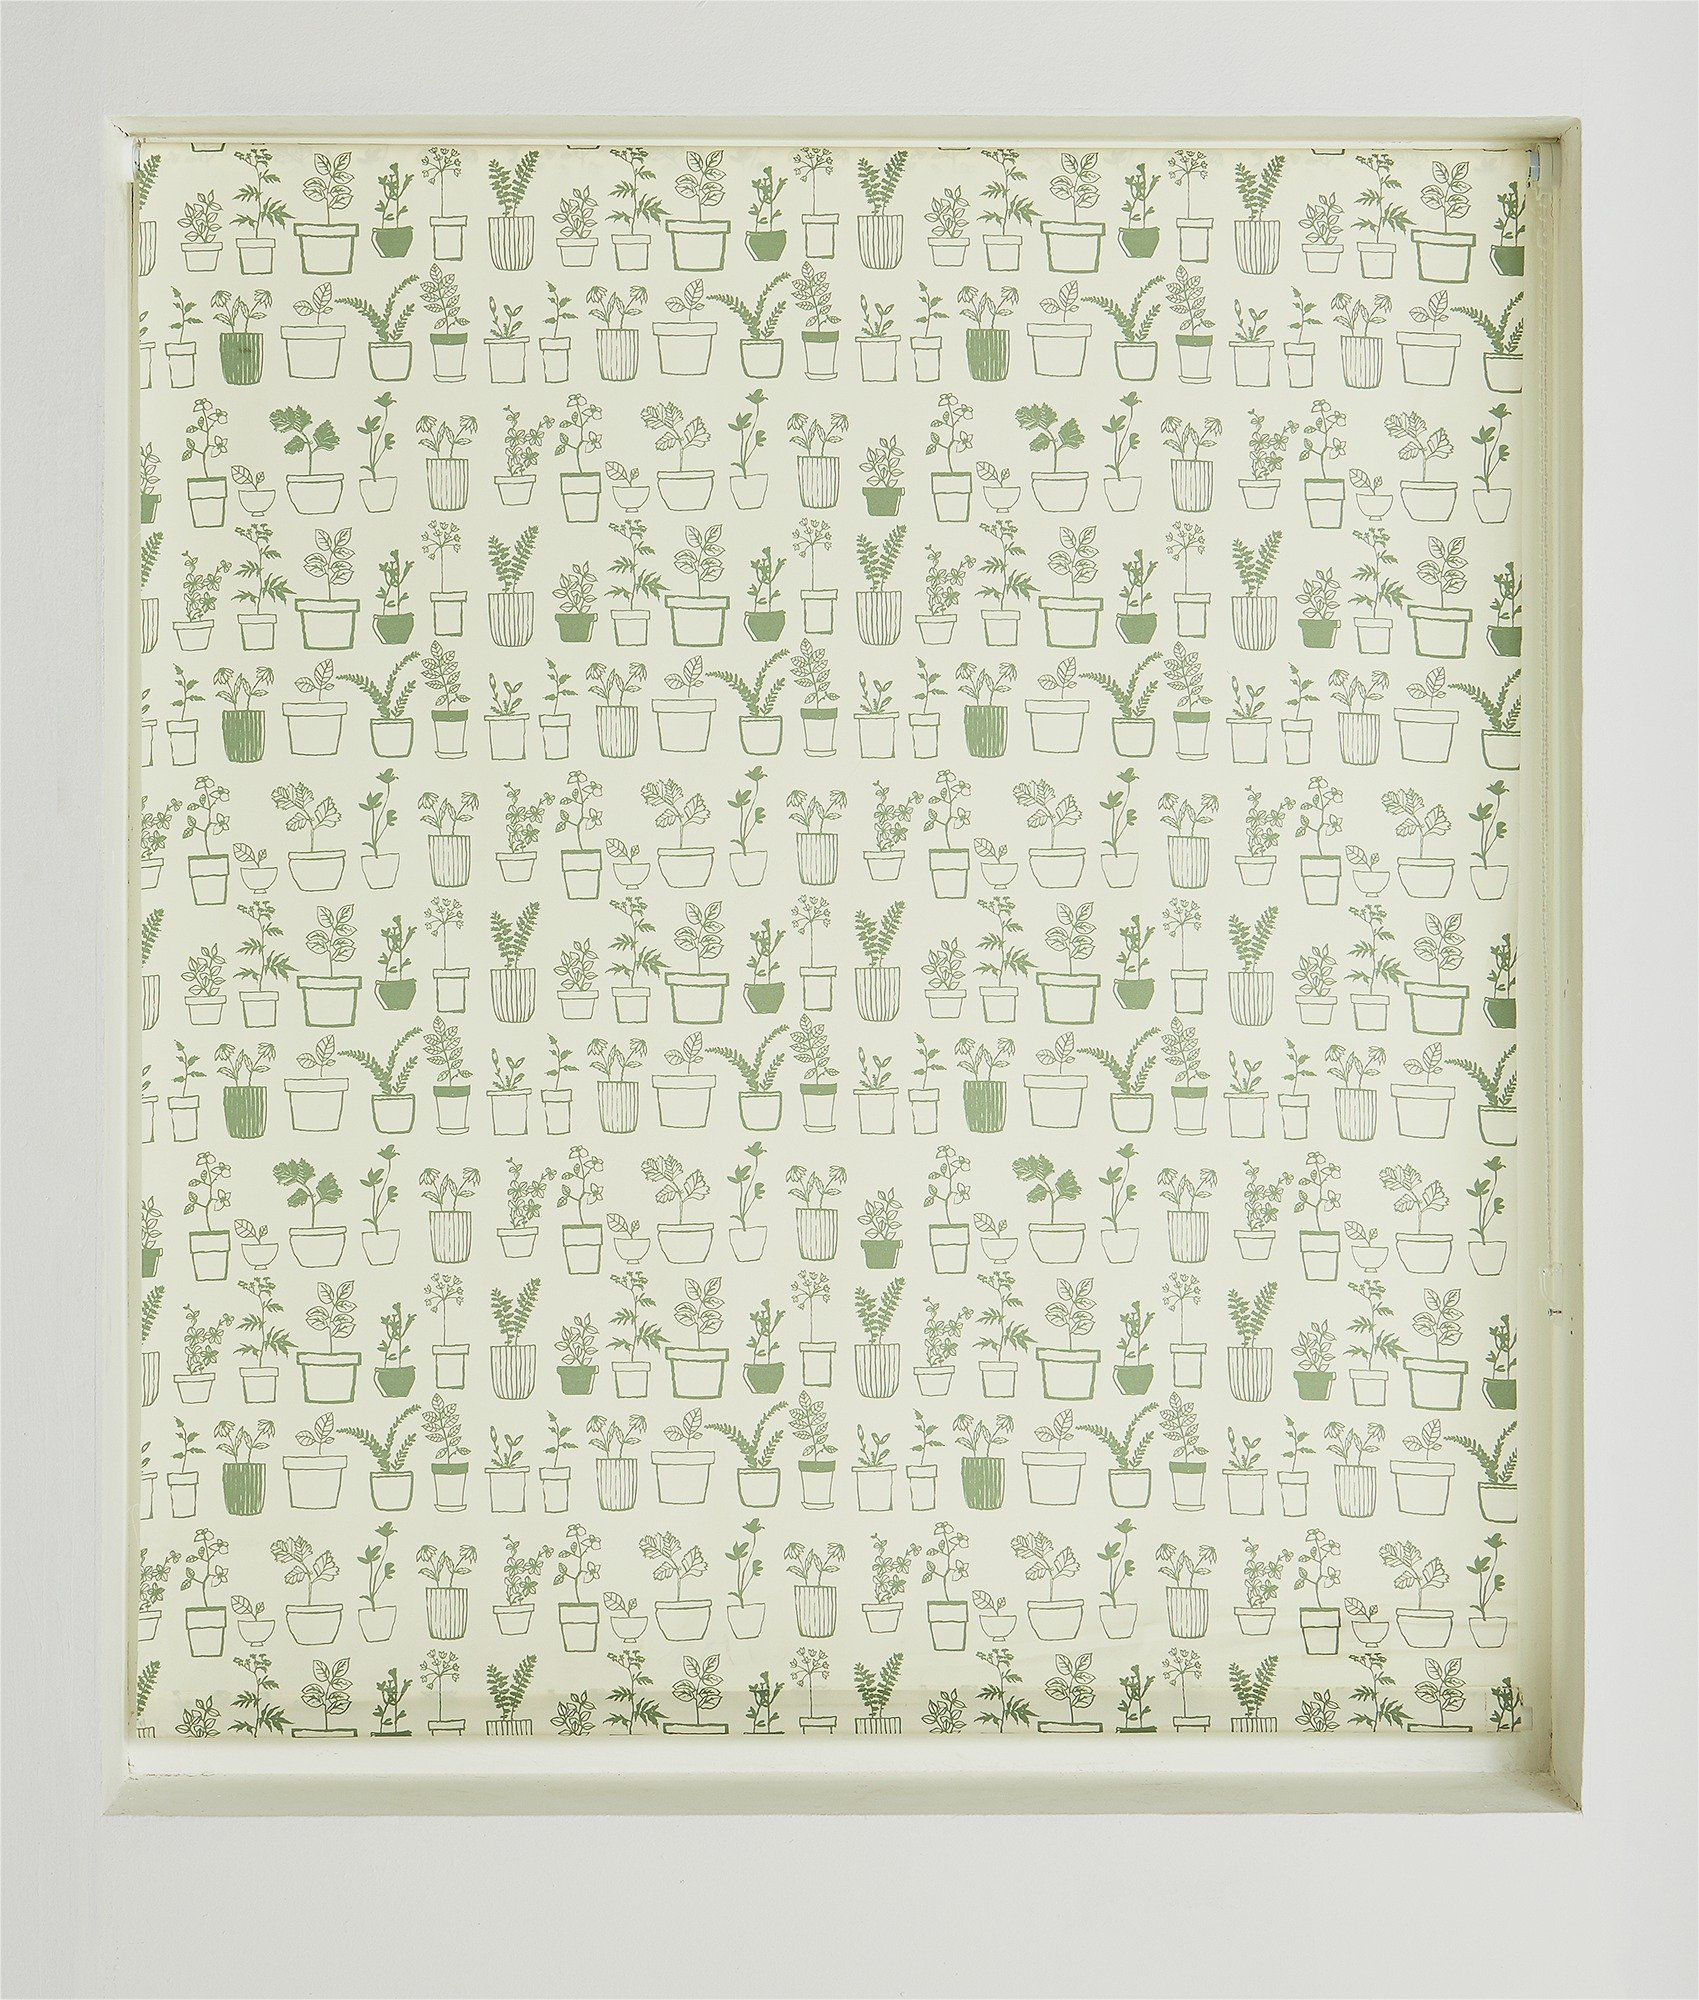 HOME Potted Plants Daylight Roller Blind - 6ft